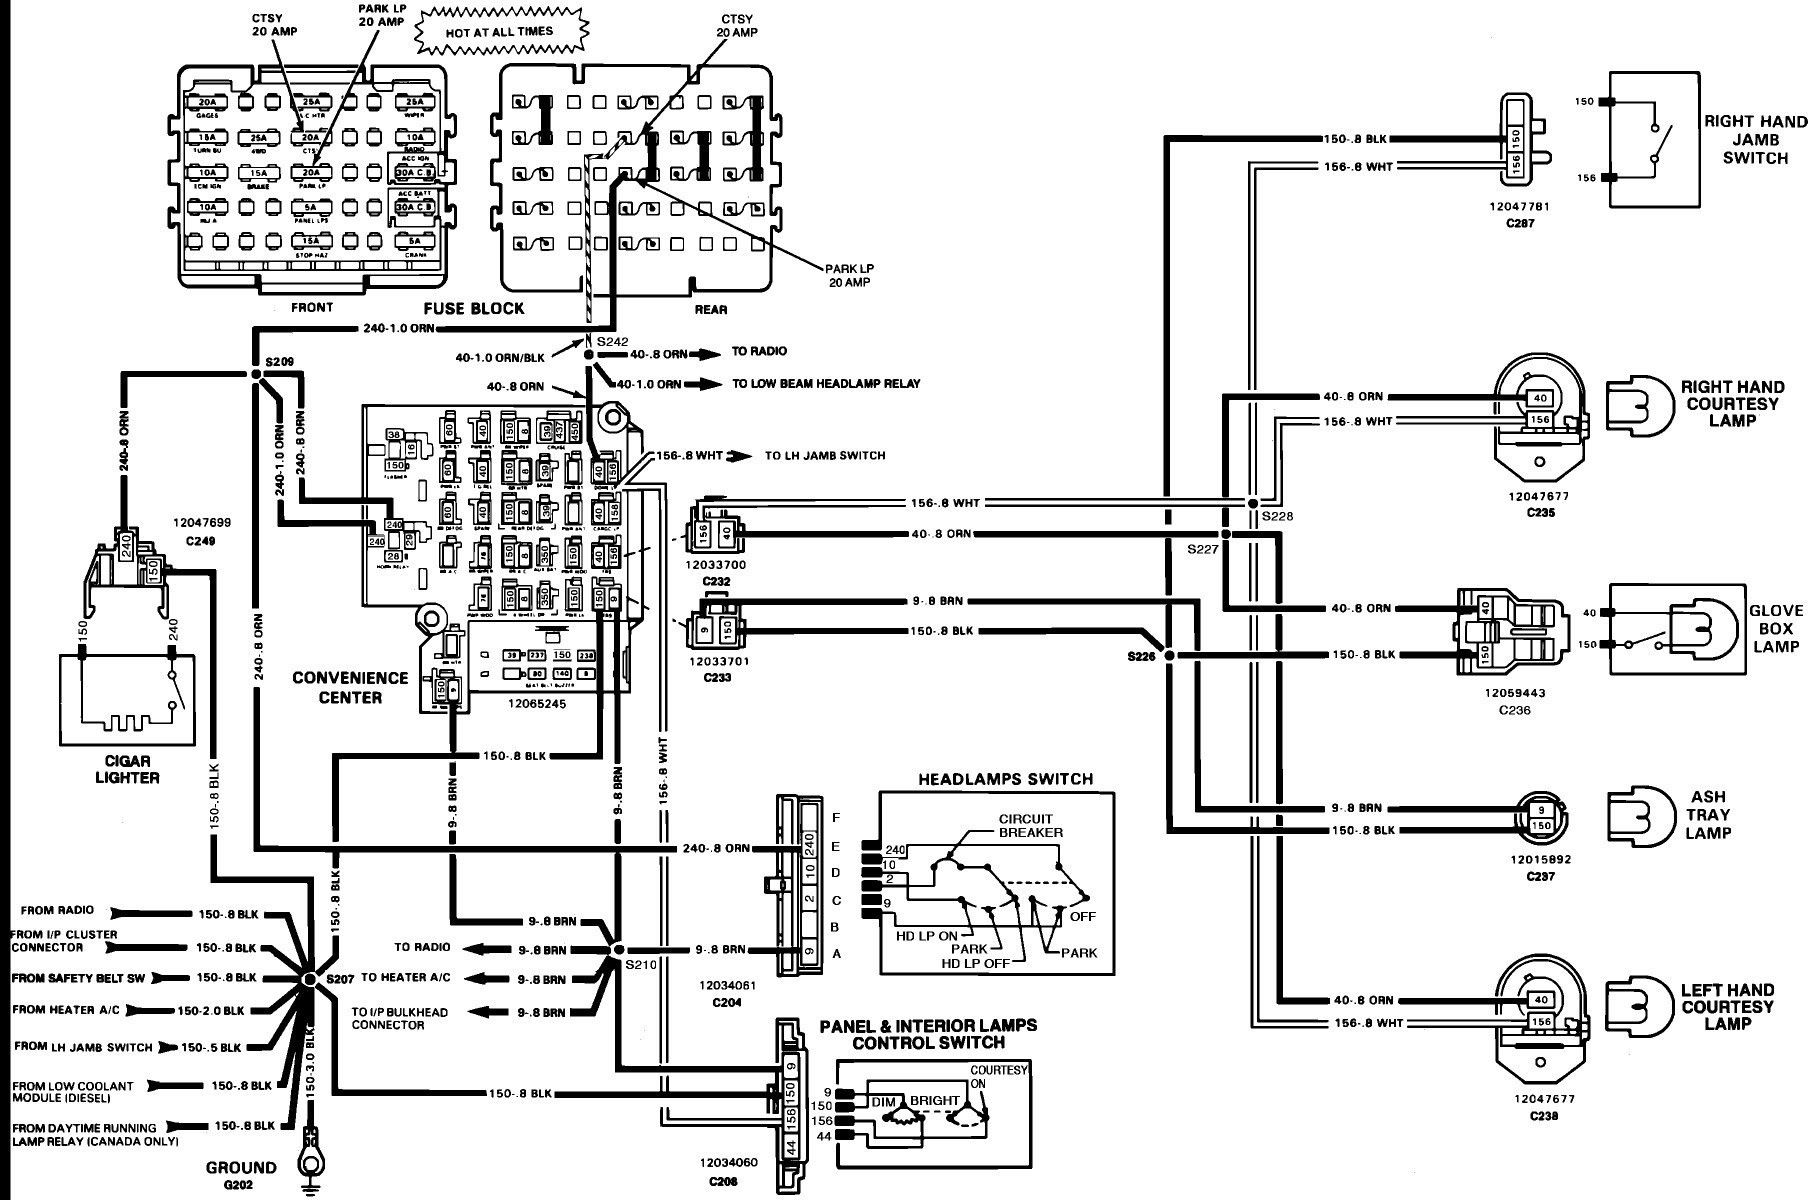 Wiring Diagram For Hogtunes Amp